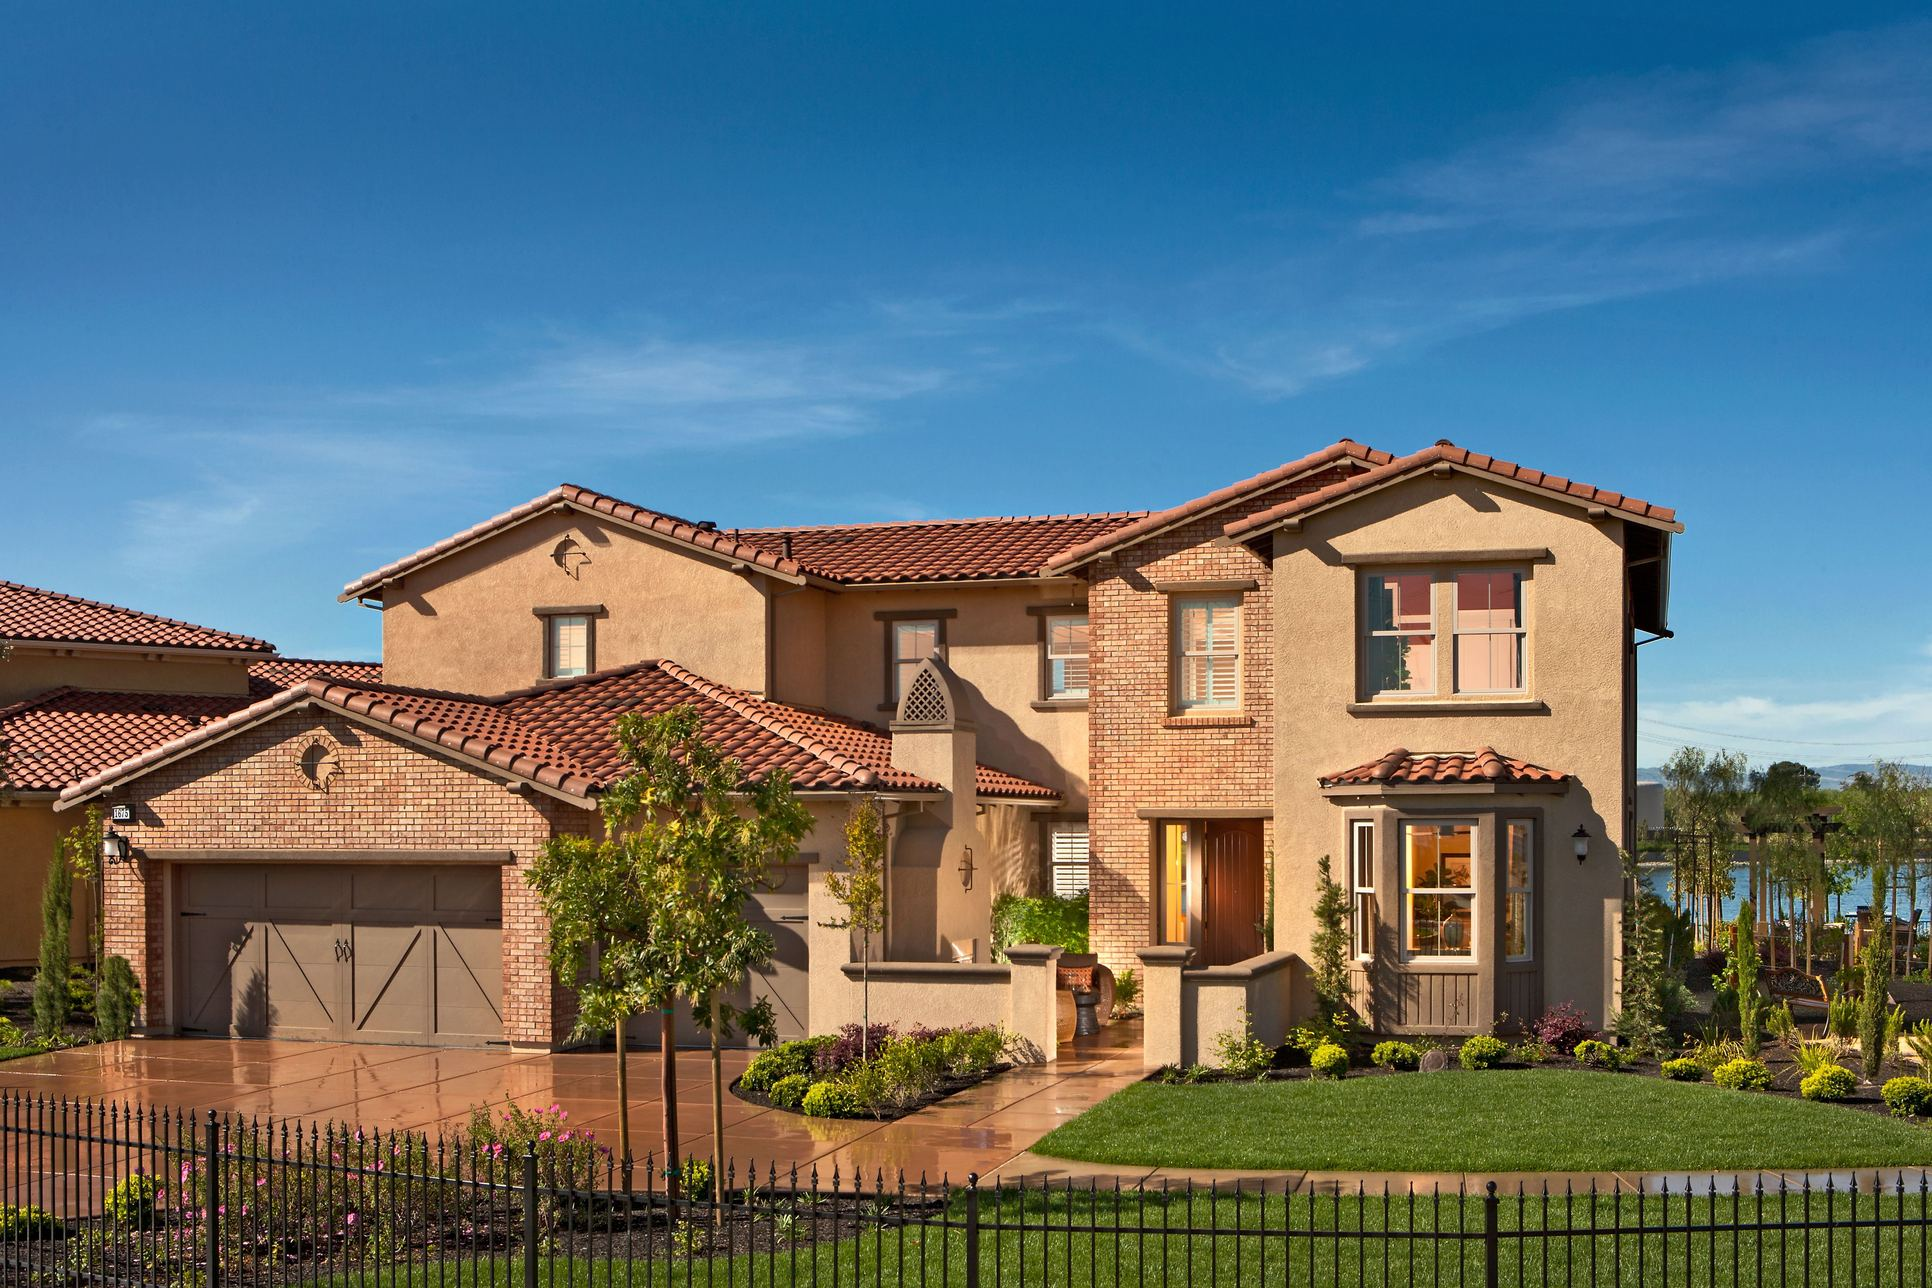 Bella Lago Plan 2X Front:Enhanced curb appeal with beautiful landscaping